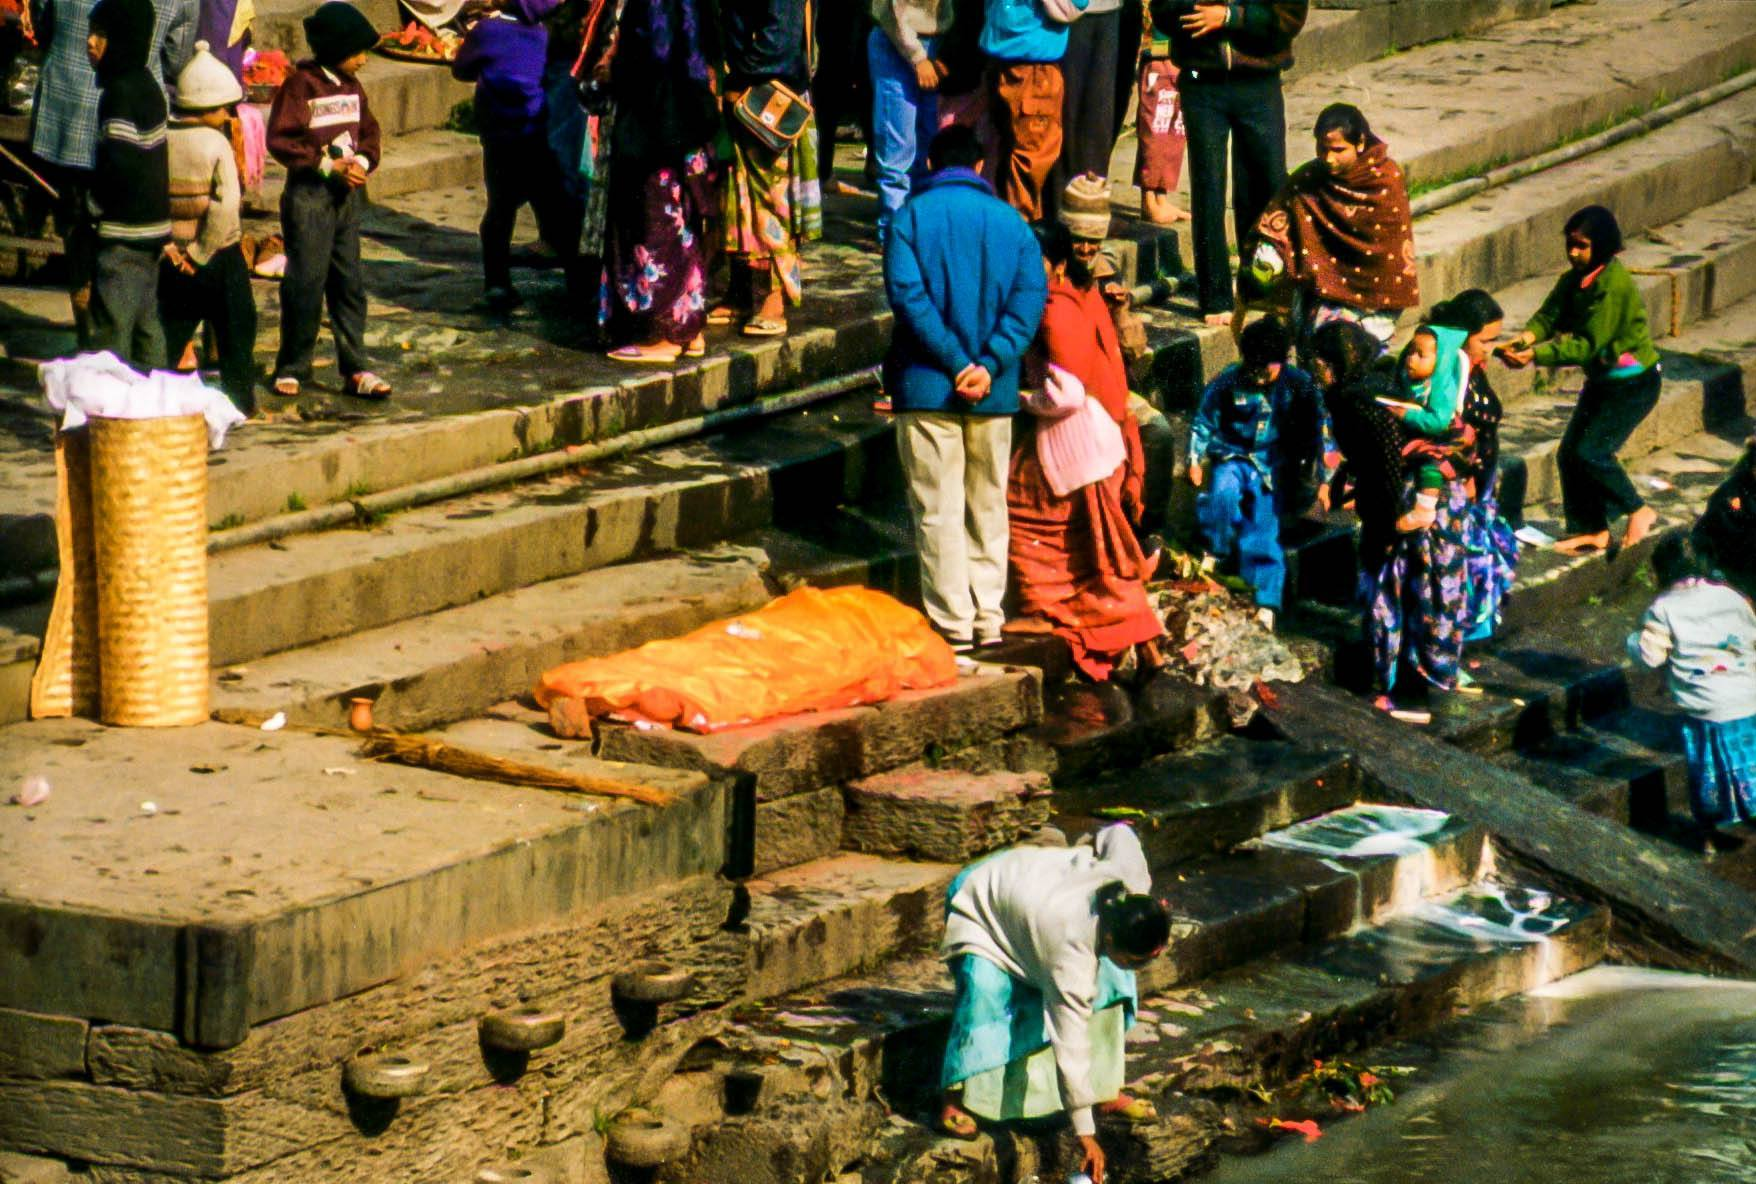 Cremation ceremony at the Bagmati River in Kathmandu, Nepal